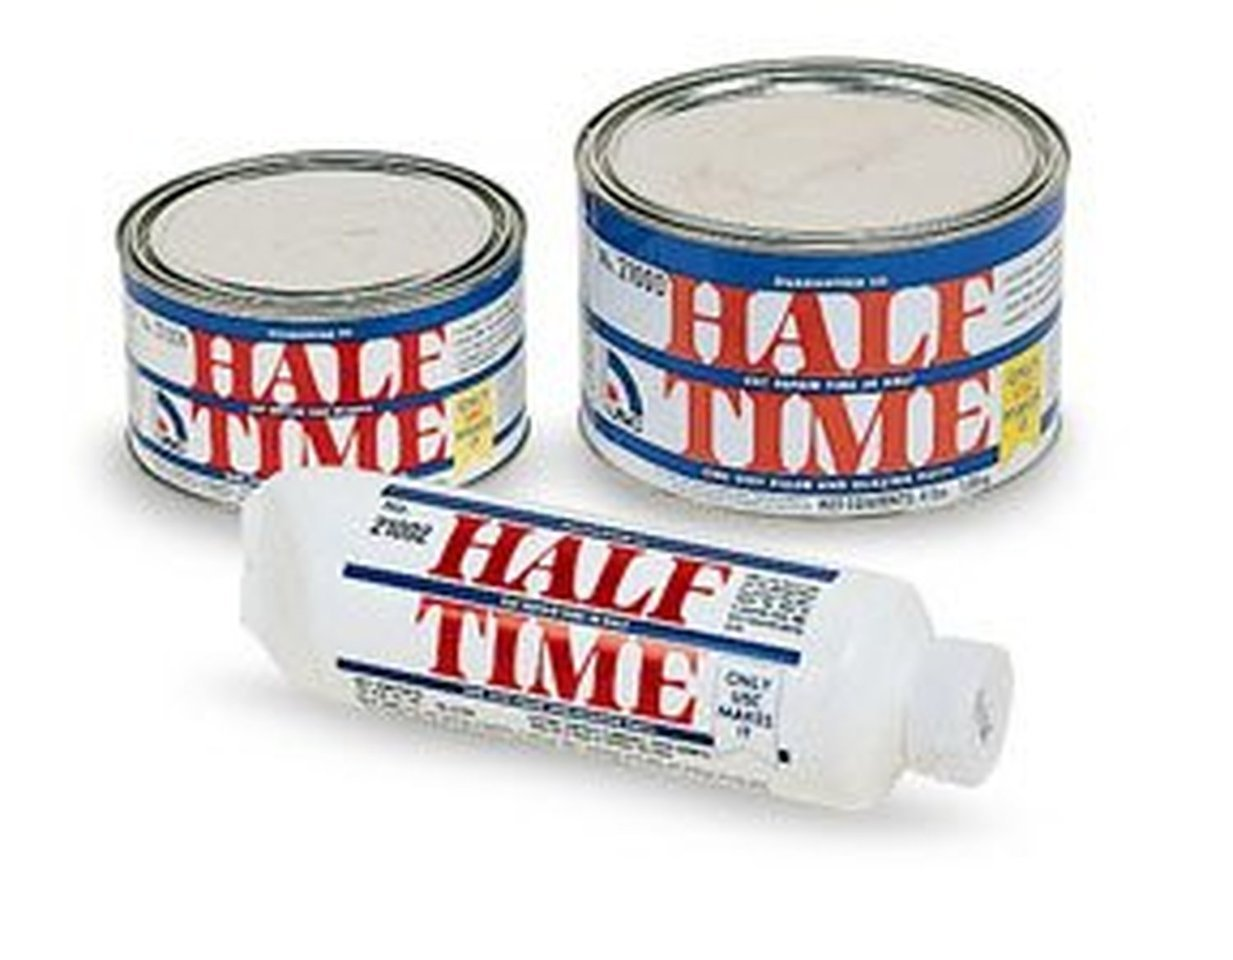 USC HALF 21004 TIME One Step Filler and Glazing Putty 1 QUART